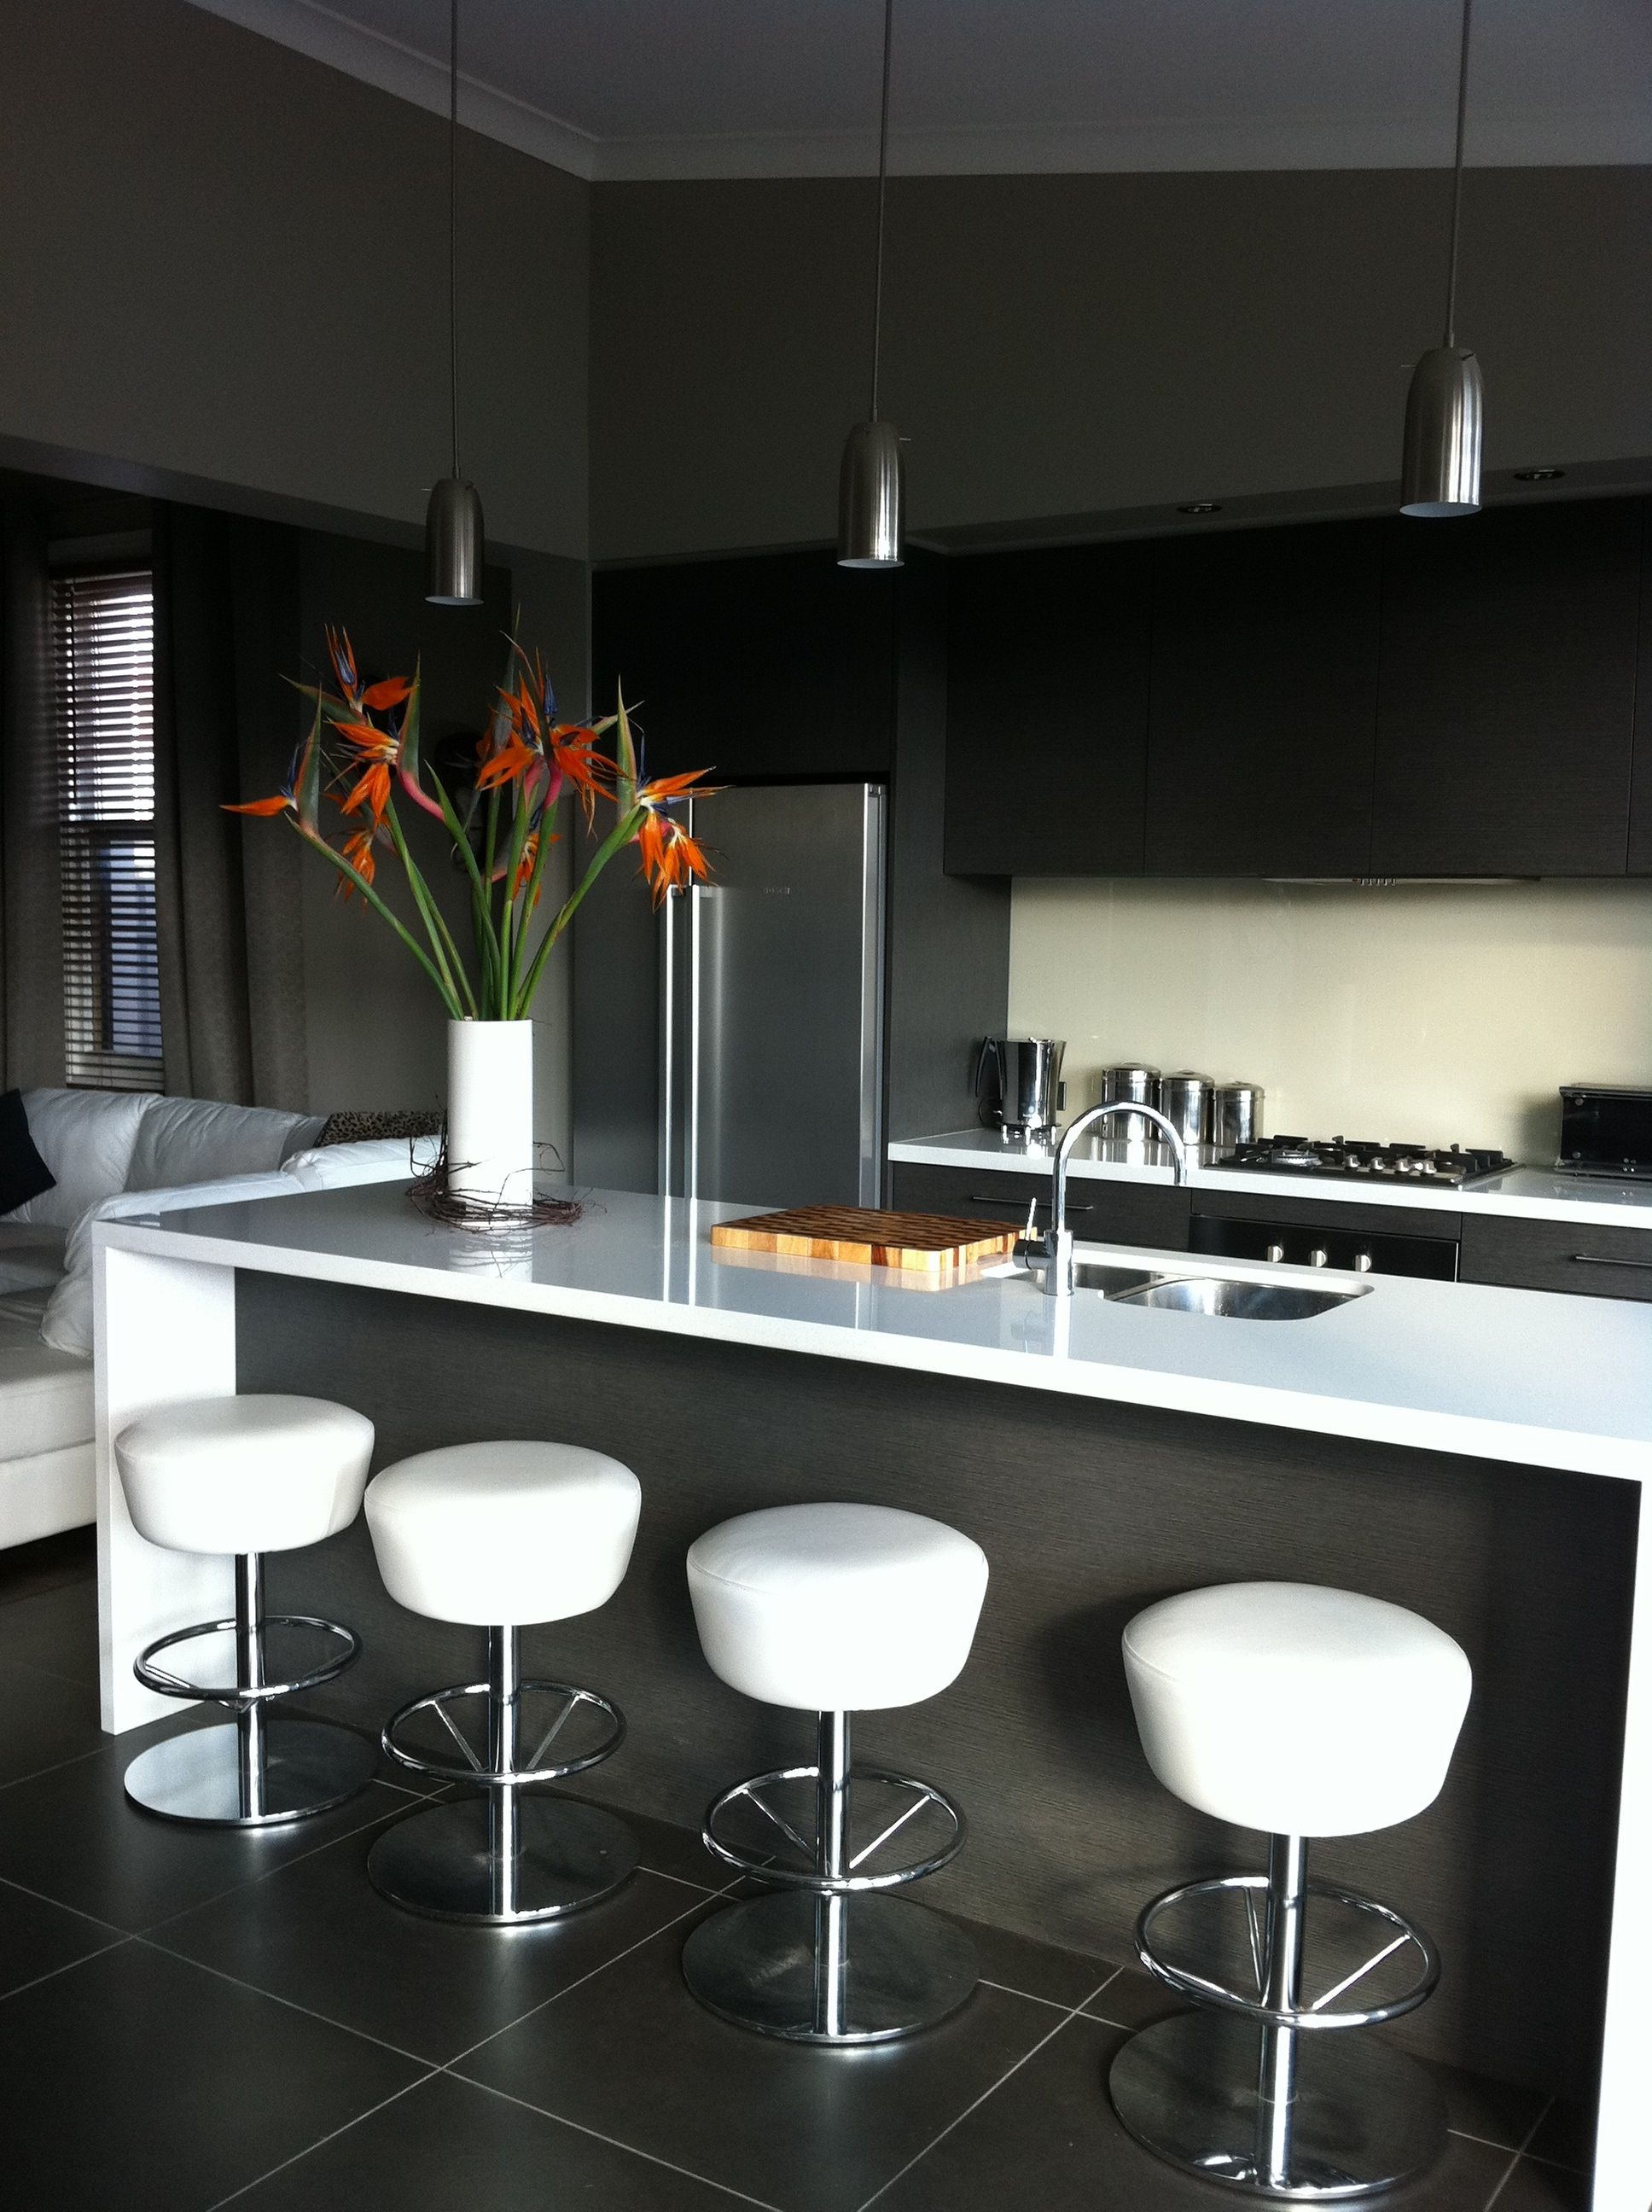 Kitchen renovation in Alberton. TK Design | Kitchen | Pinterest ...